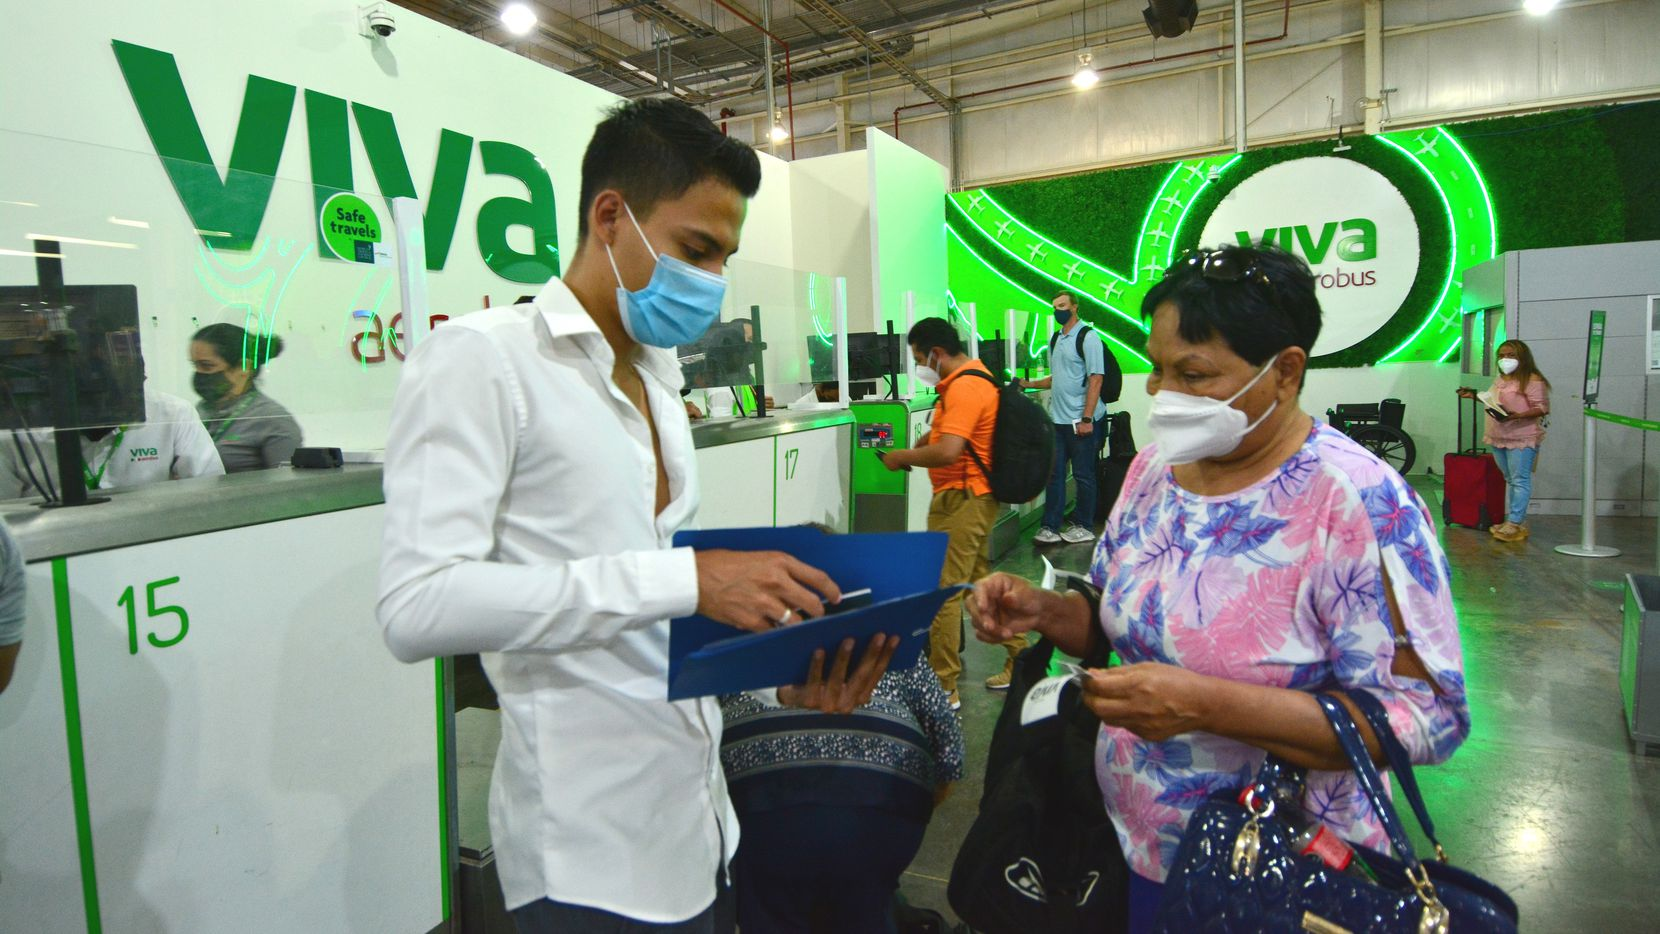 Graciela Cortés Rodríguez (right) gets her documentation checked by Abraham Serrano of MoncloTexas Tours before taking a flight from Monterrey's International Airport to DFW International Airport on Monday, September 20, 2021. (Pedro Pérez/Special Contributor.)